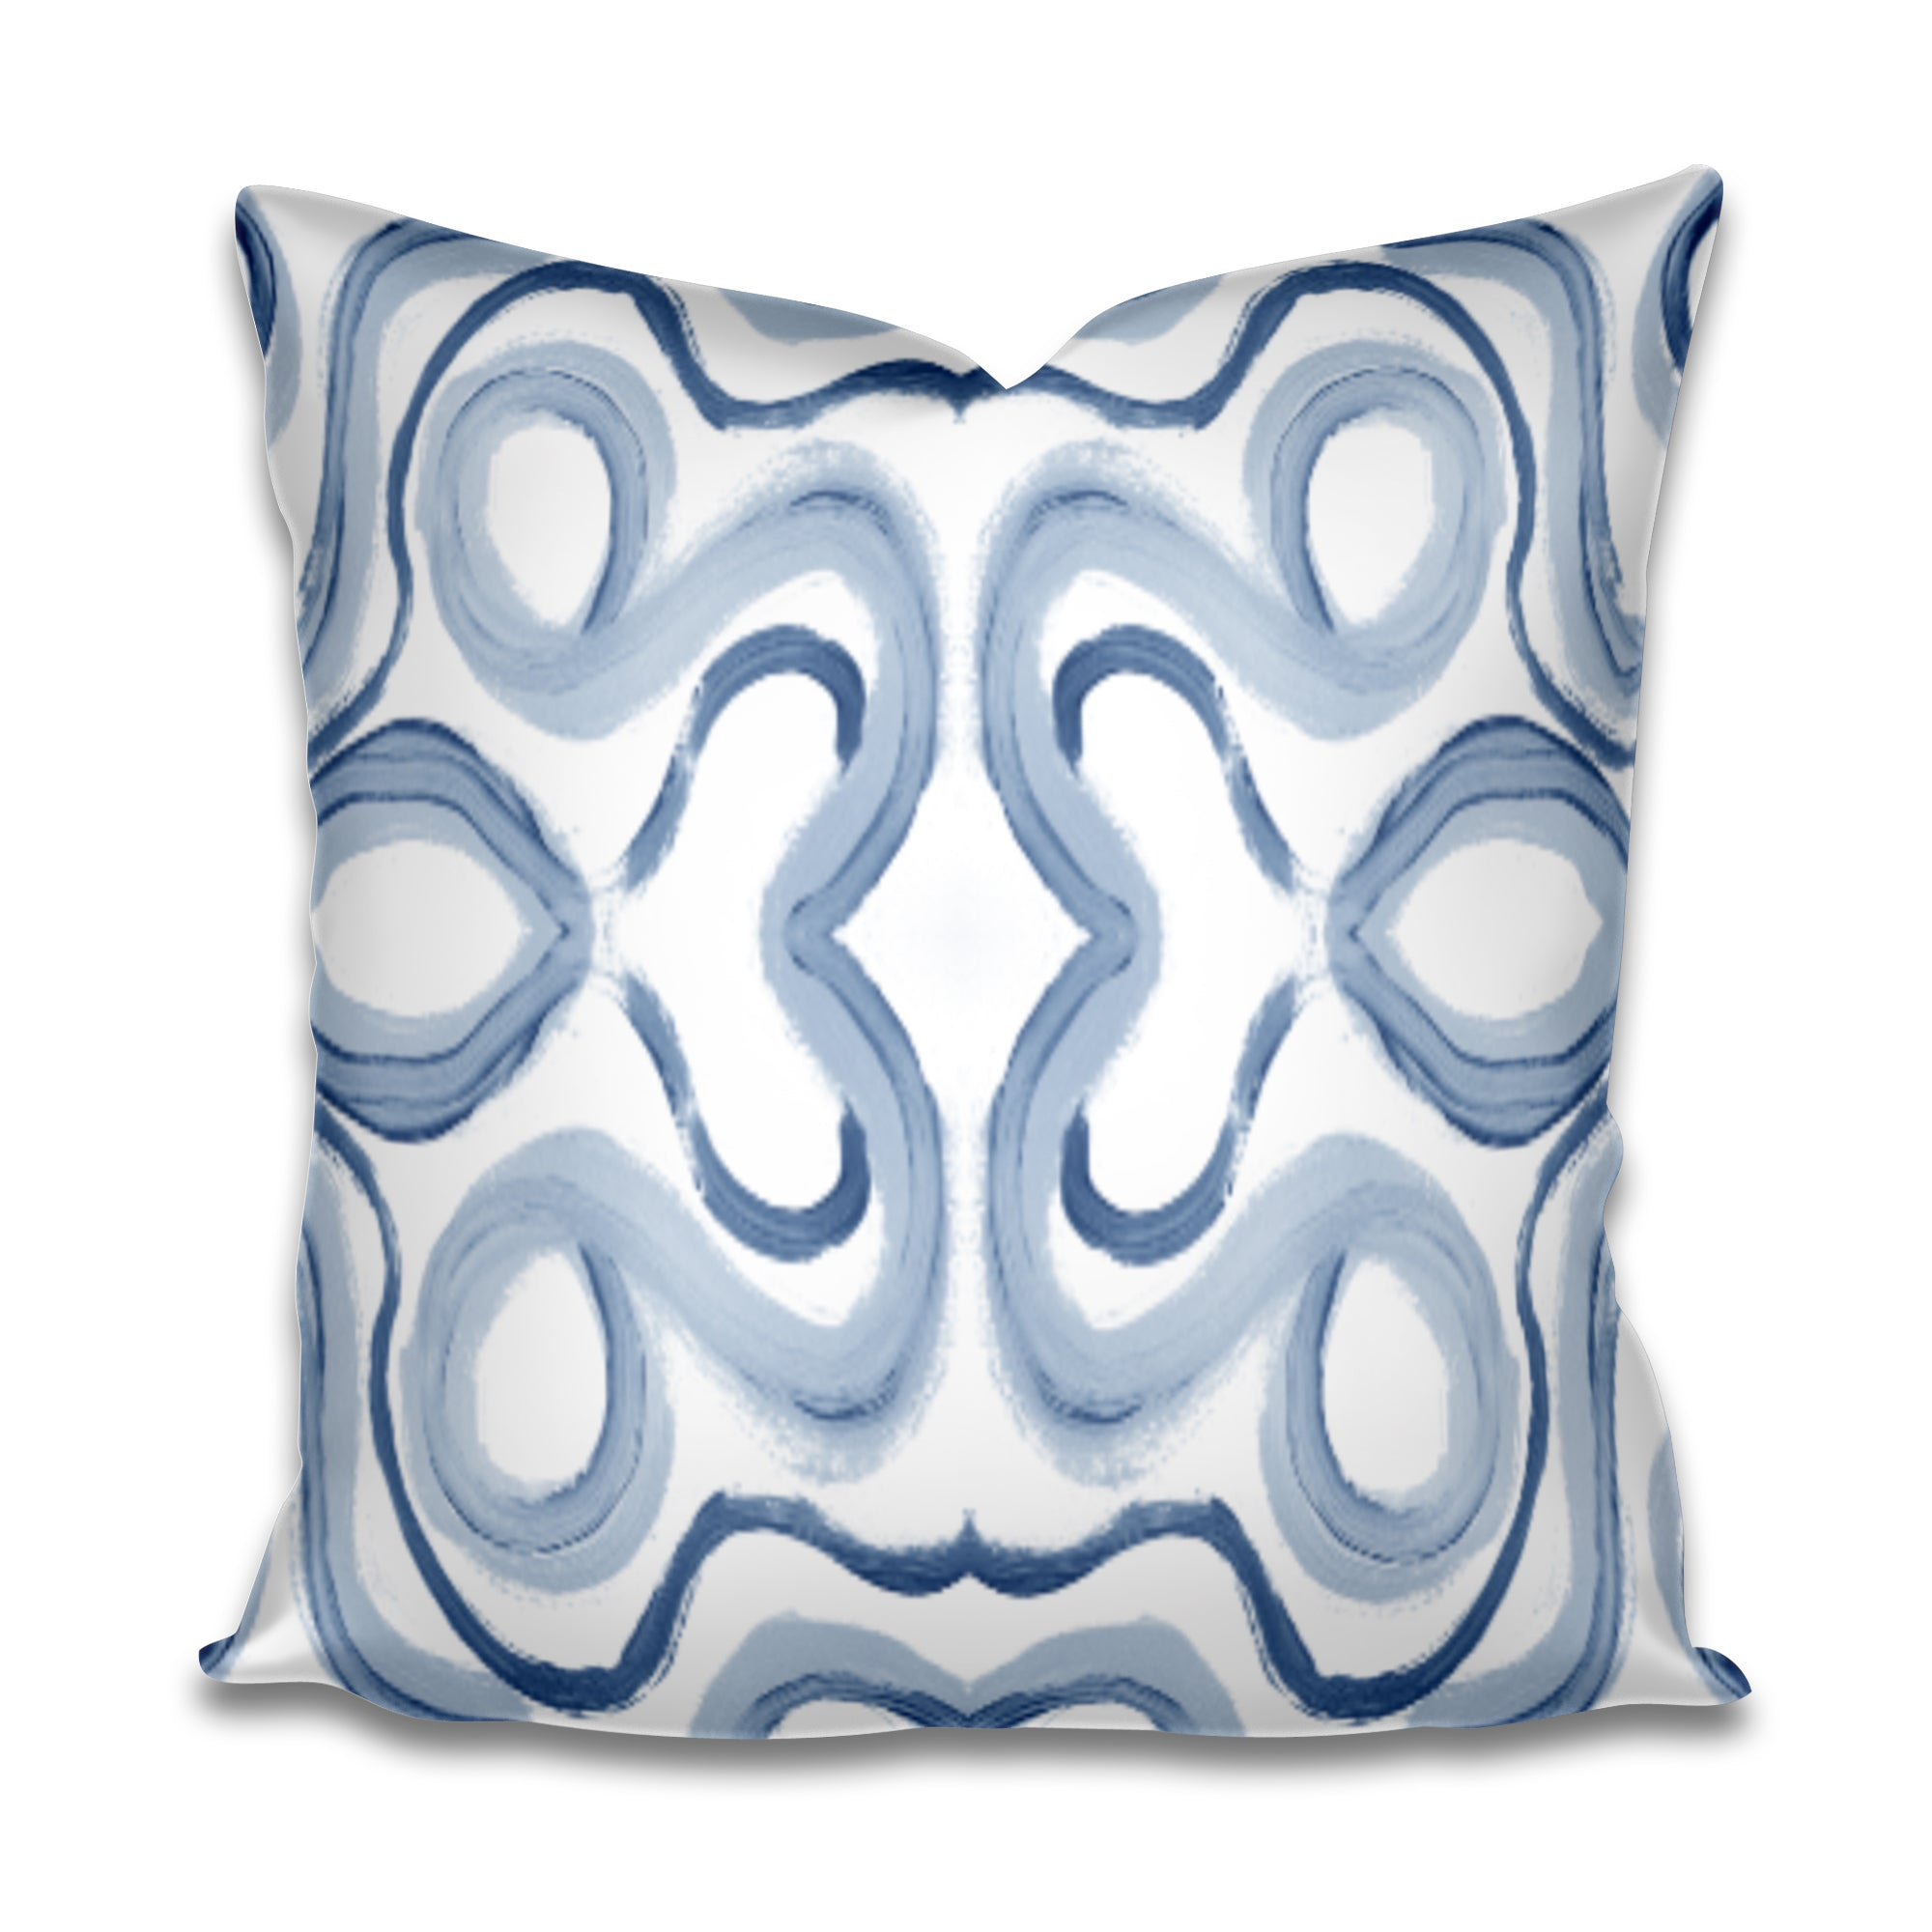 blue paint stroke pillow cover, painterly blue pillow, blue swirl pillow cover, accent pillow beach house blue swirl